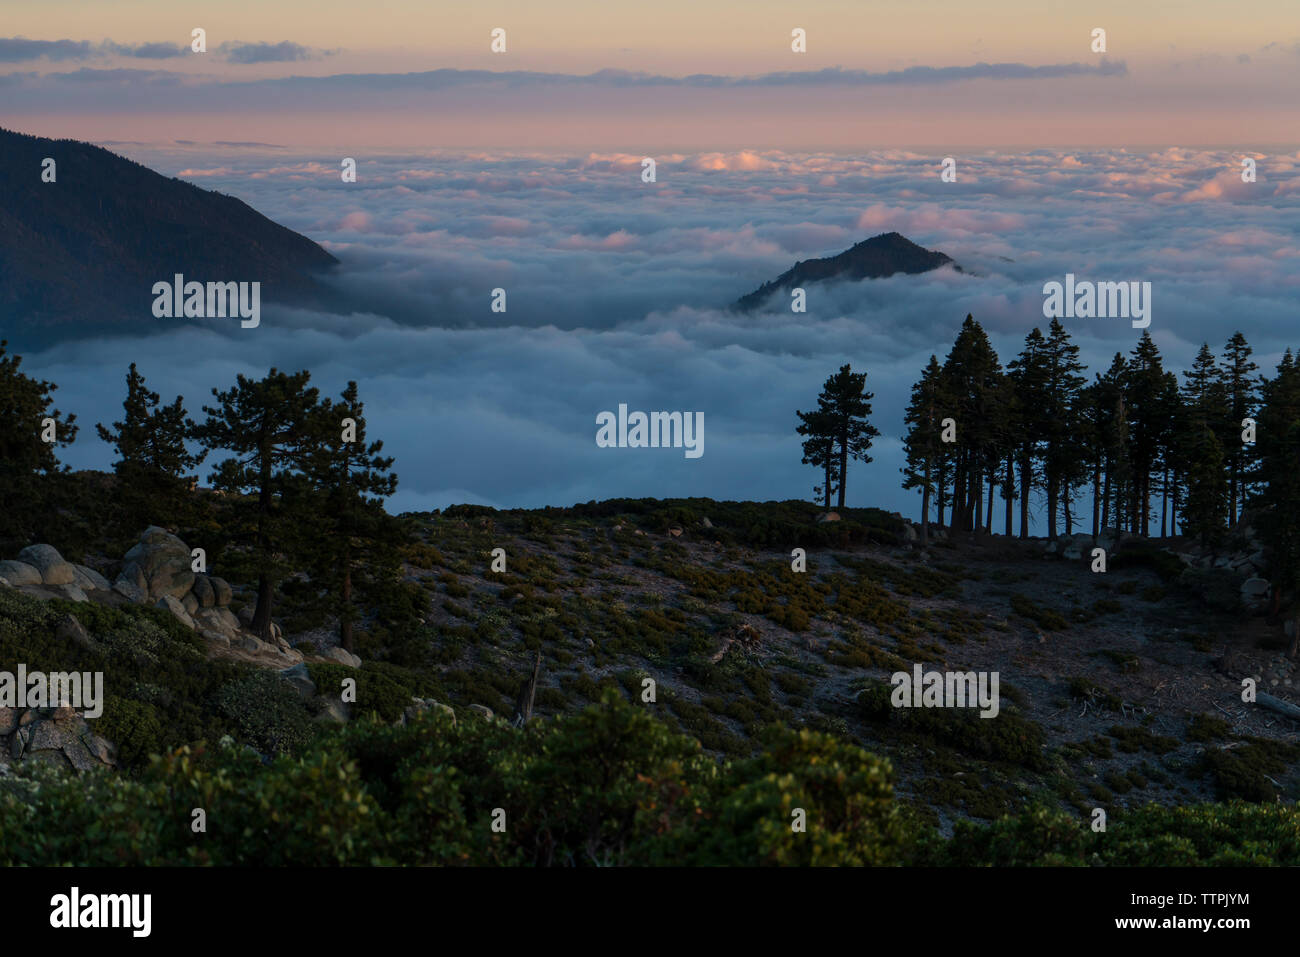 Scenic view of cloudscape by mountain during sunset - Stock Image